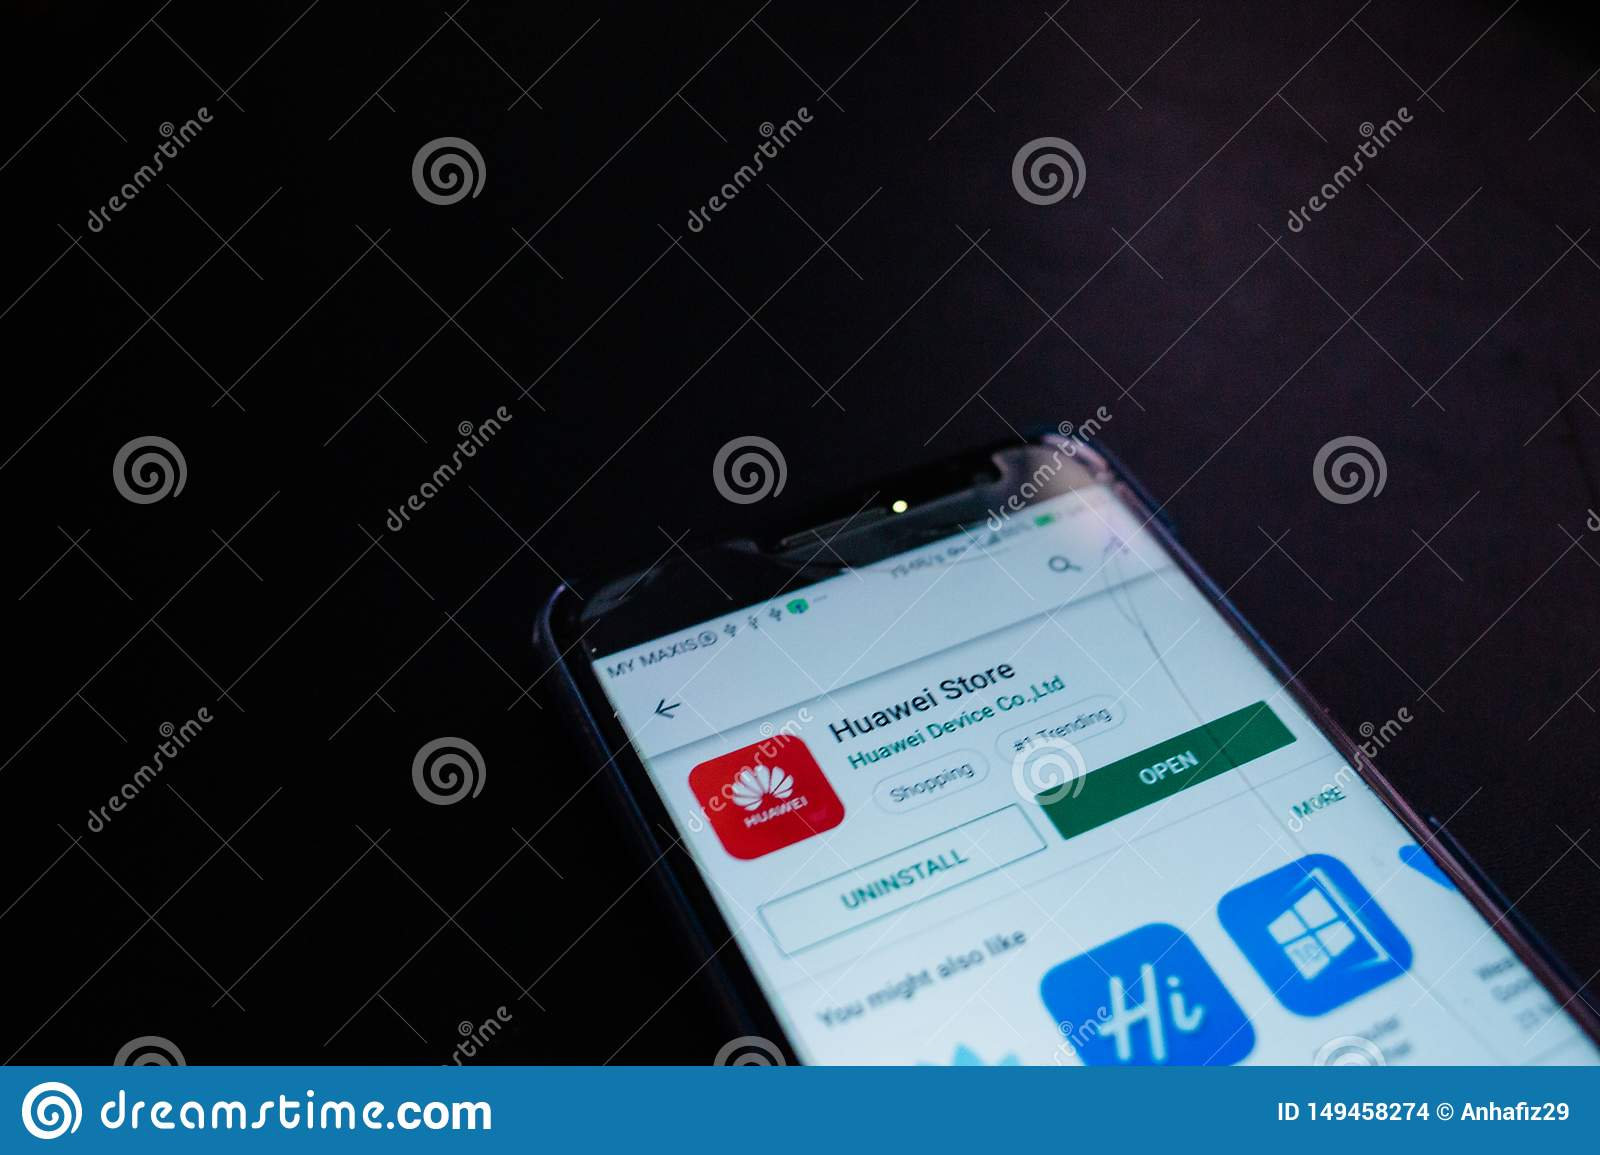 Huawei store application close up on smartphone screen